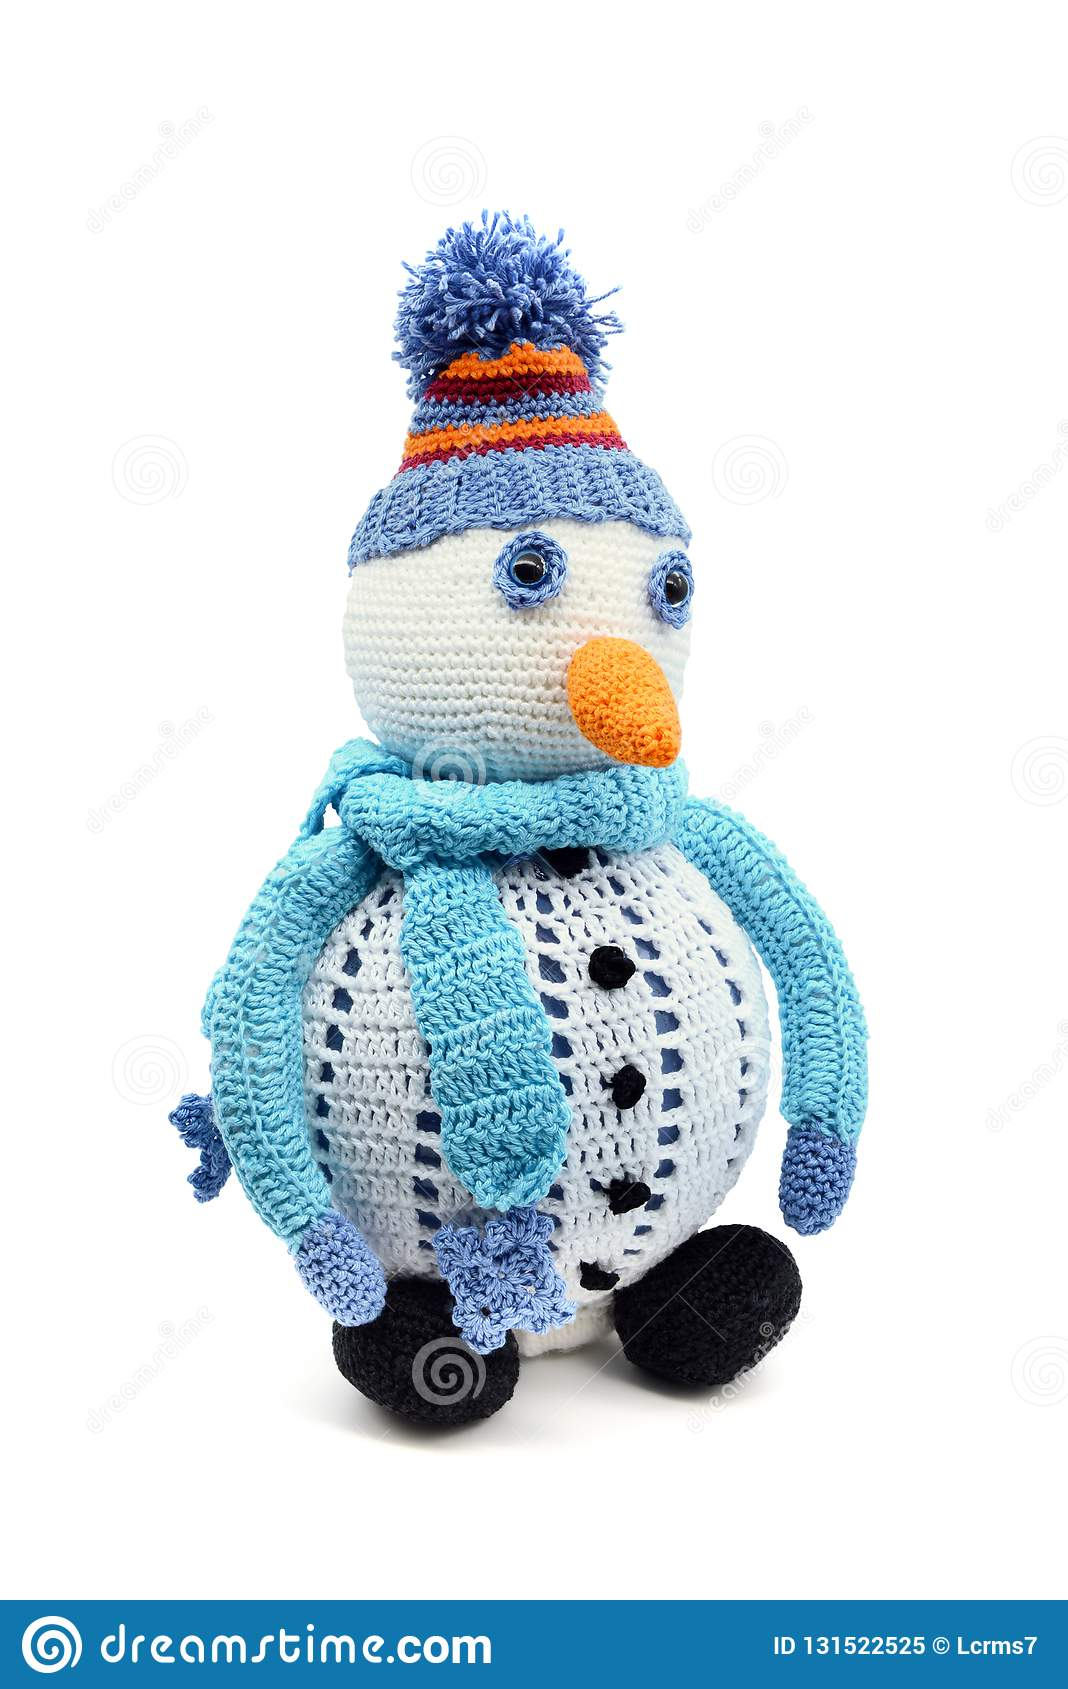 Snowman With Scarf And Carrot Crochet Of Wool On White Isolated